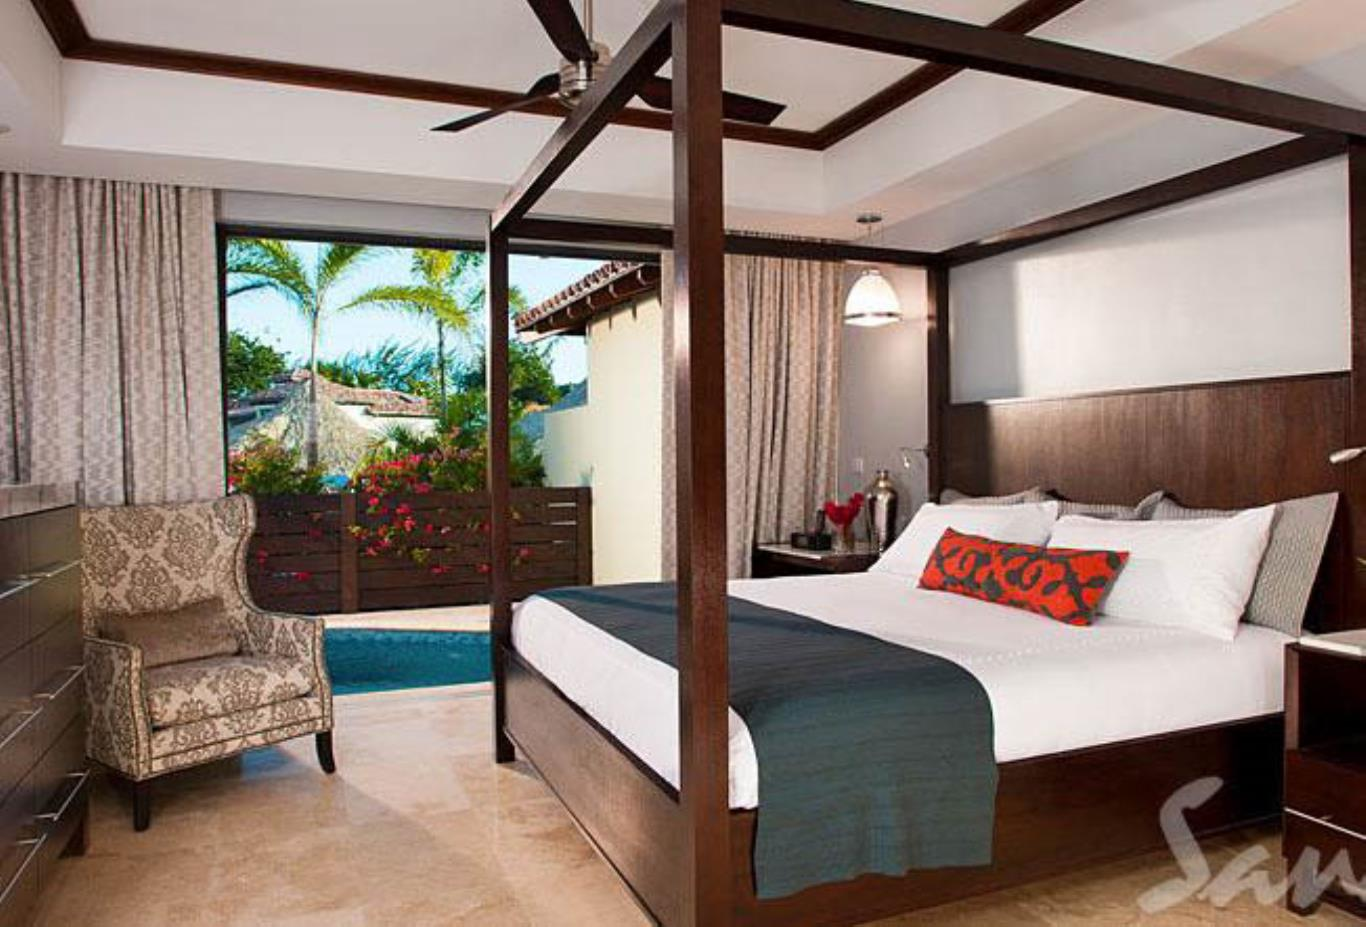 South Seas Honeymoon One Bedroom Butler Suite with Private Pool Sanctuary - 1BP